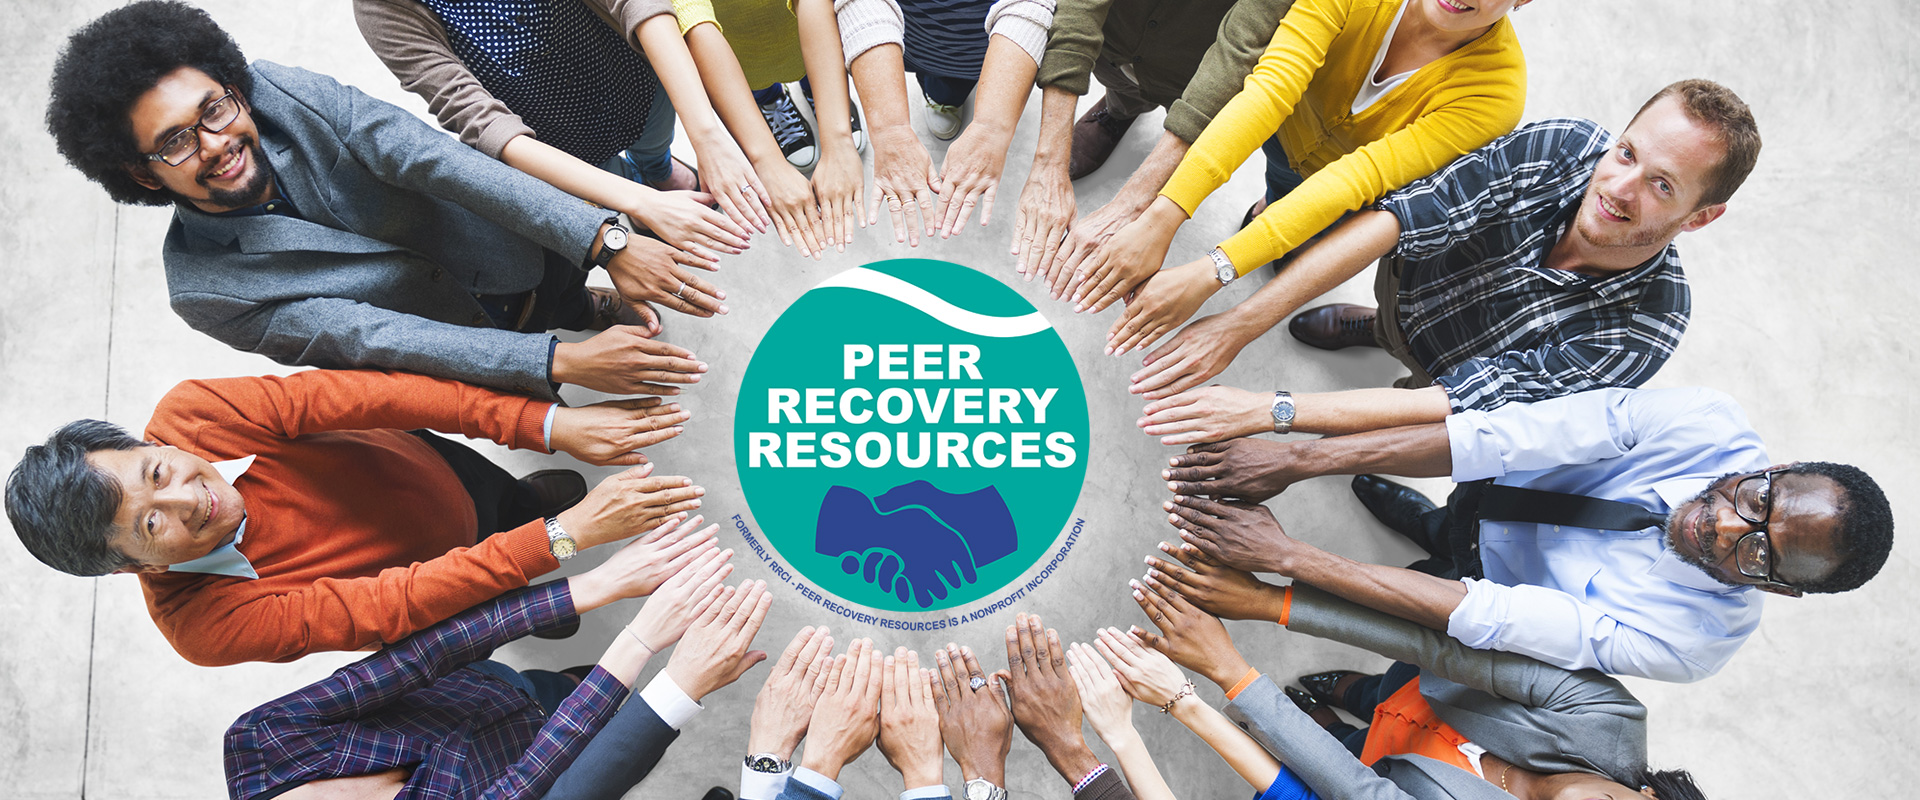 Peer Recovery Resources